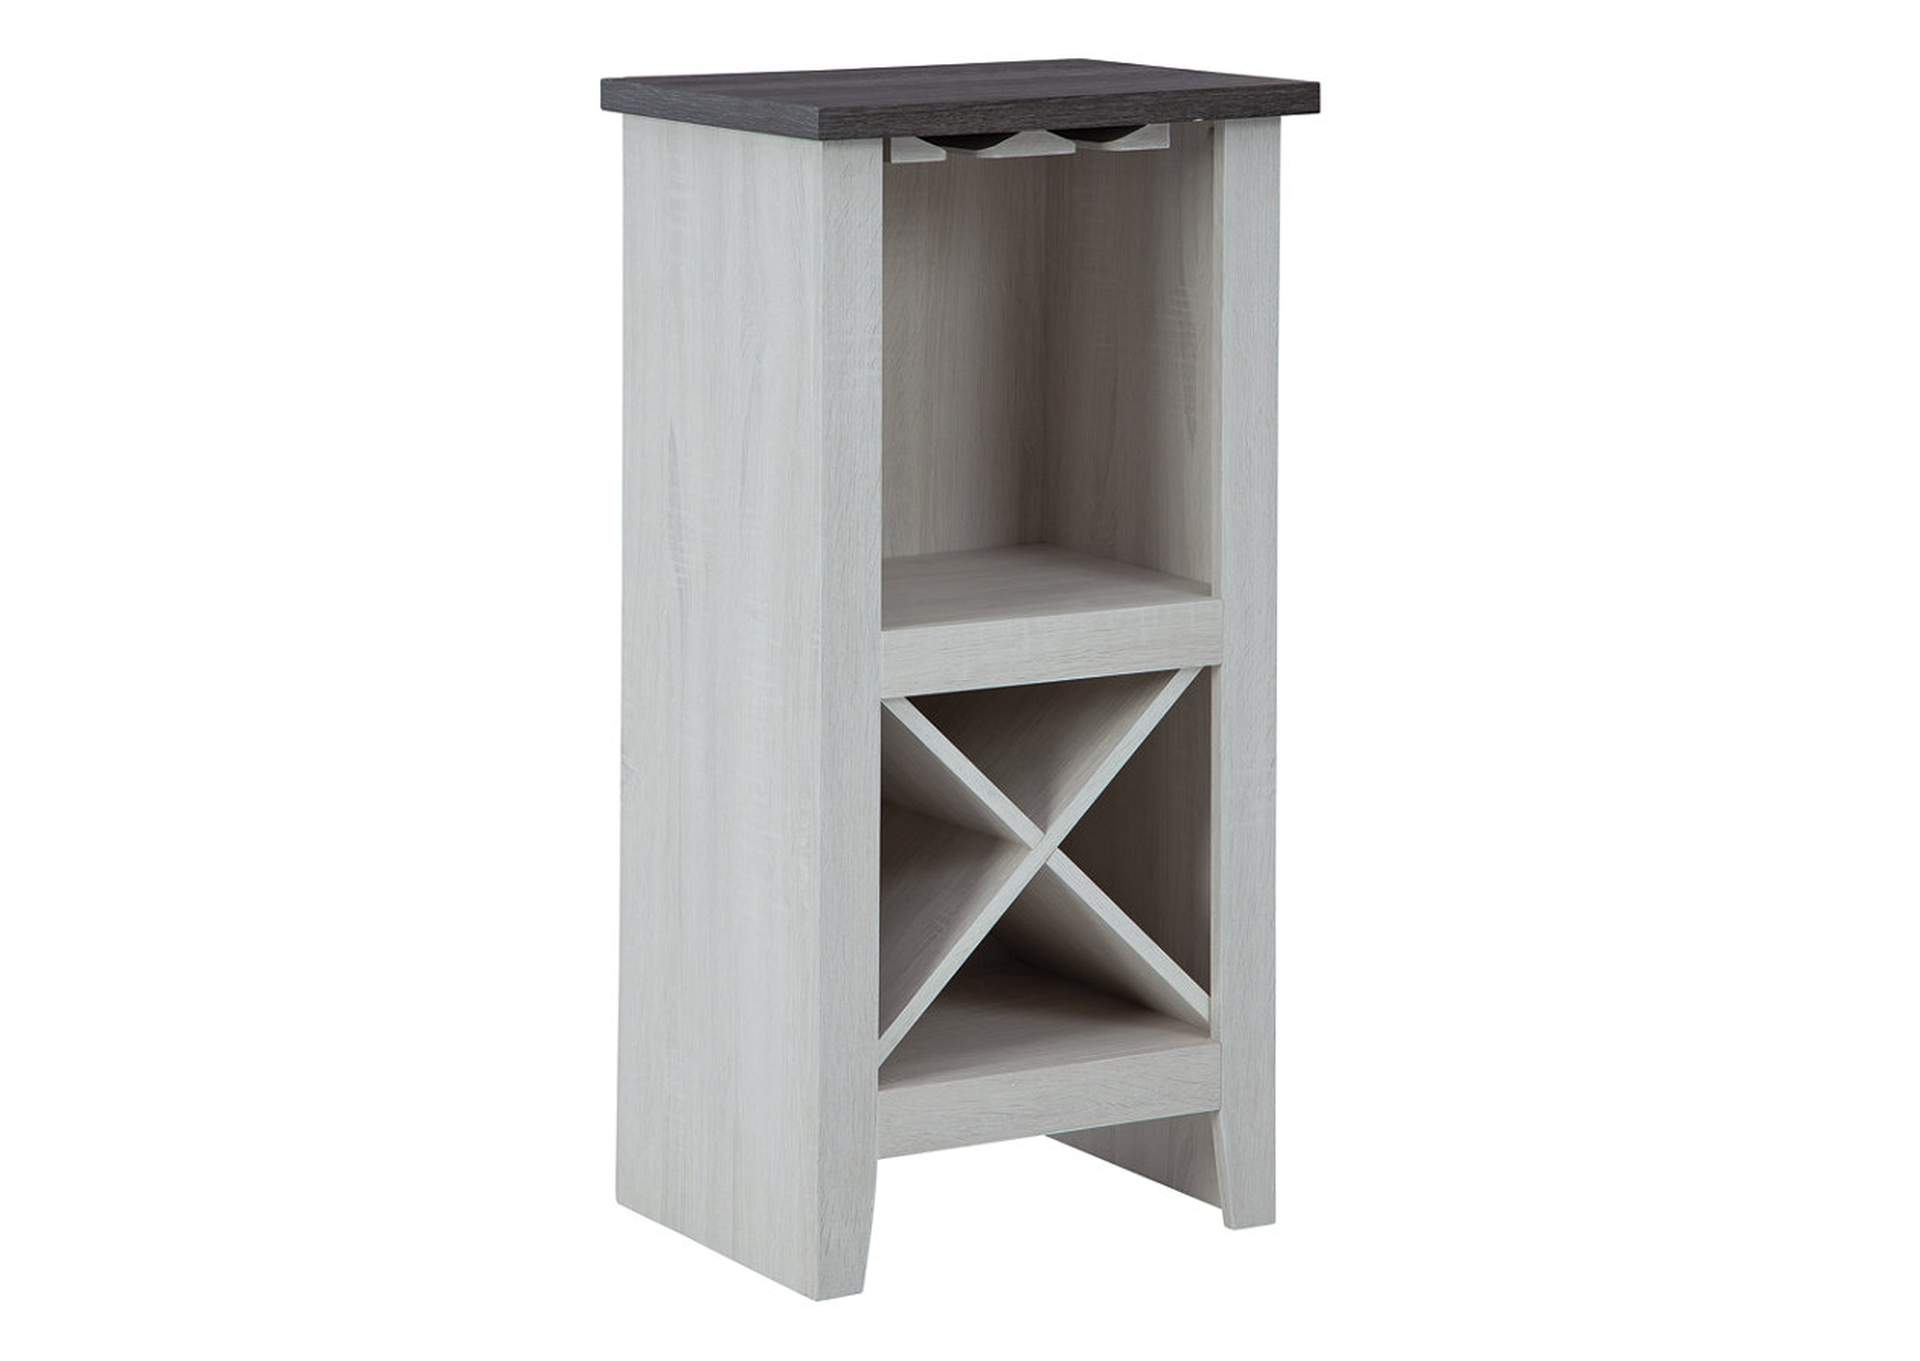 Turnley Accent Cabinet,Signature Design By Ashley